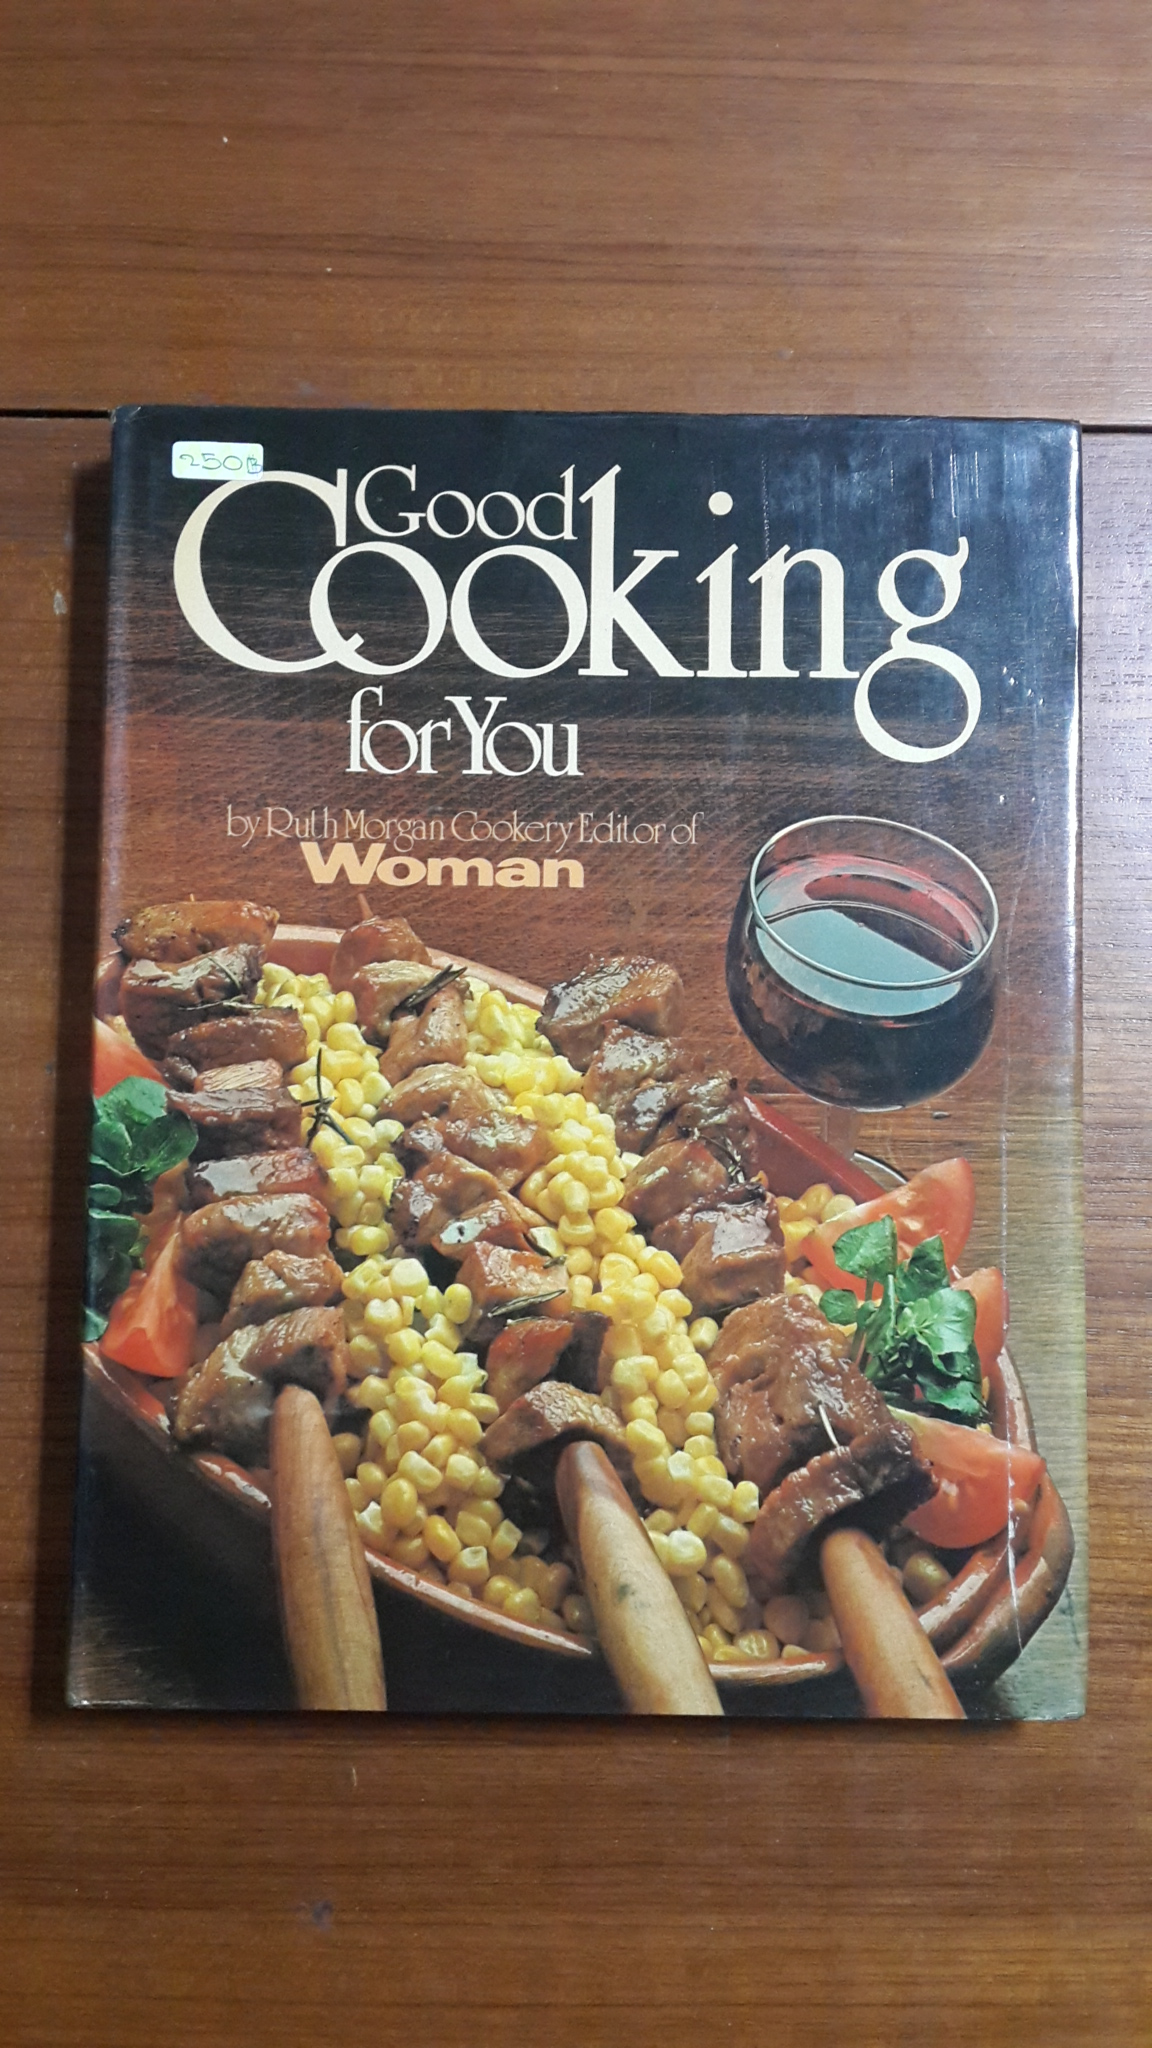 Good Cooking for You / Woman